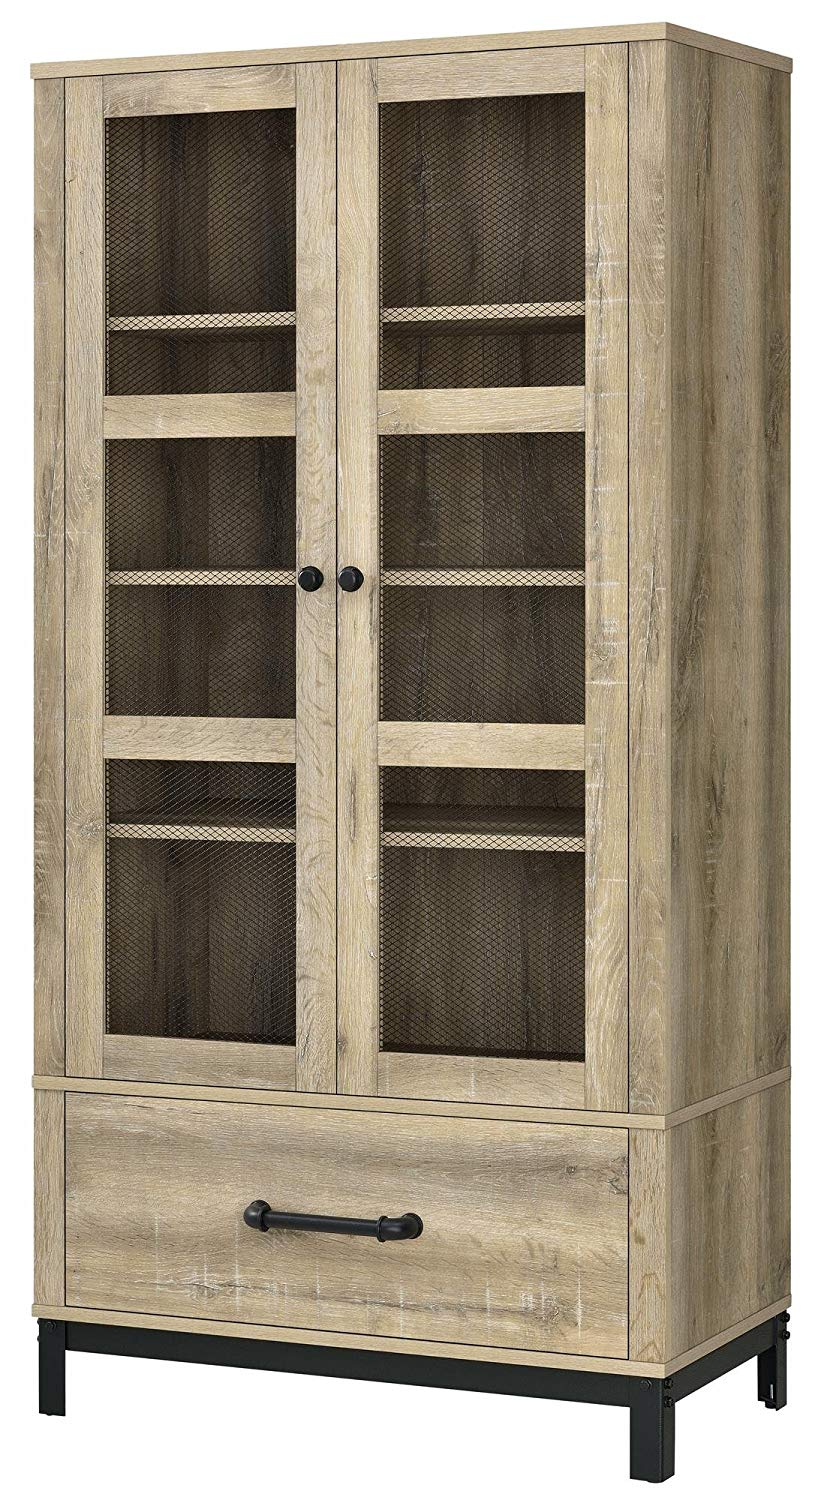 Extra Storage Home Cabinet, Natural, Laminated Particleboard and Metal, Light Brown Woodgrain Finish, 2 Adjustable and 2 Fixed Shelves, 2 Doors, Drawer, Rustic and Industrial, Stylish + Expert Guide